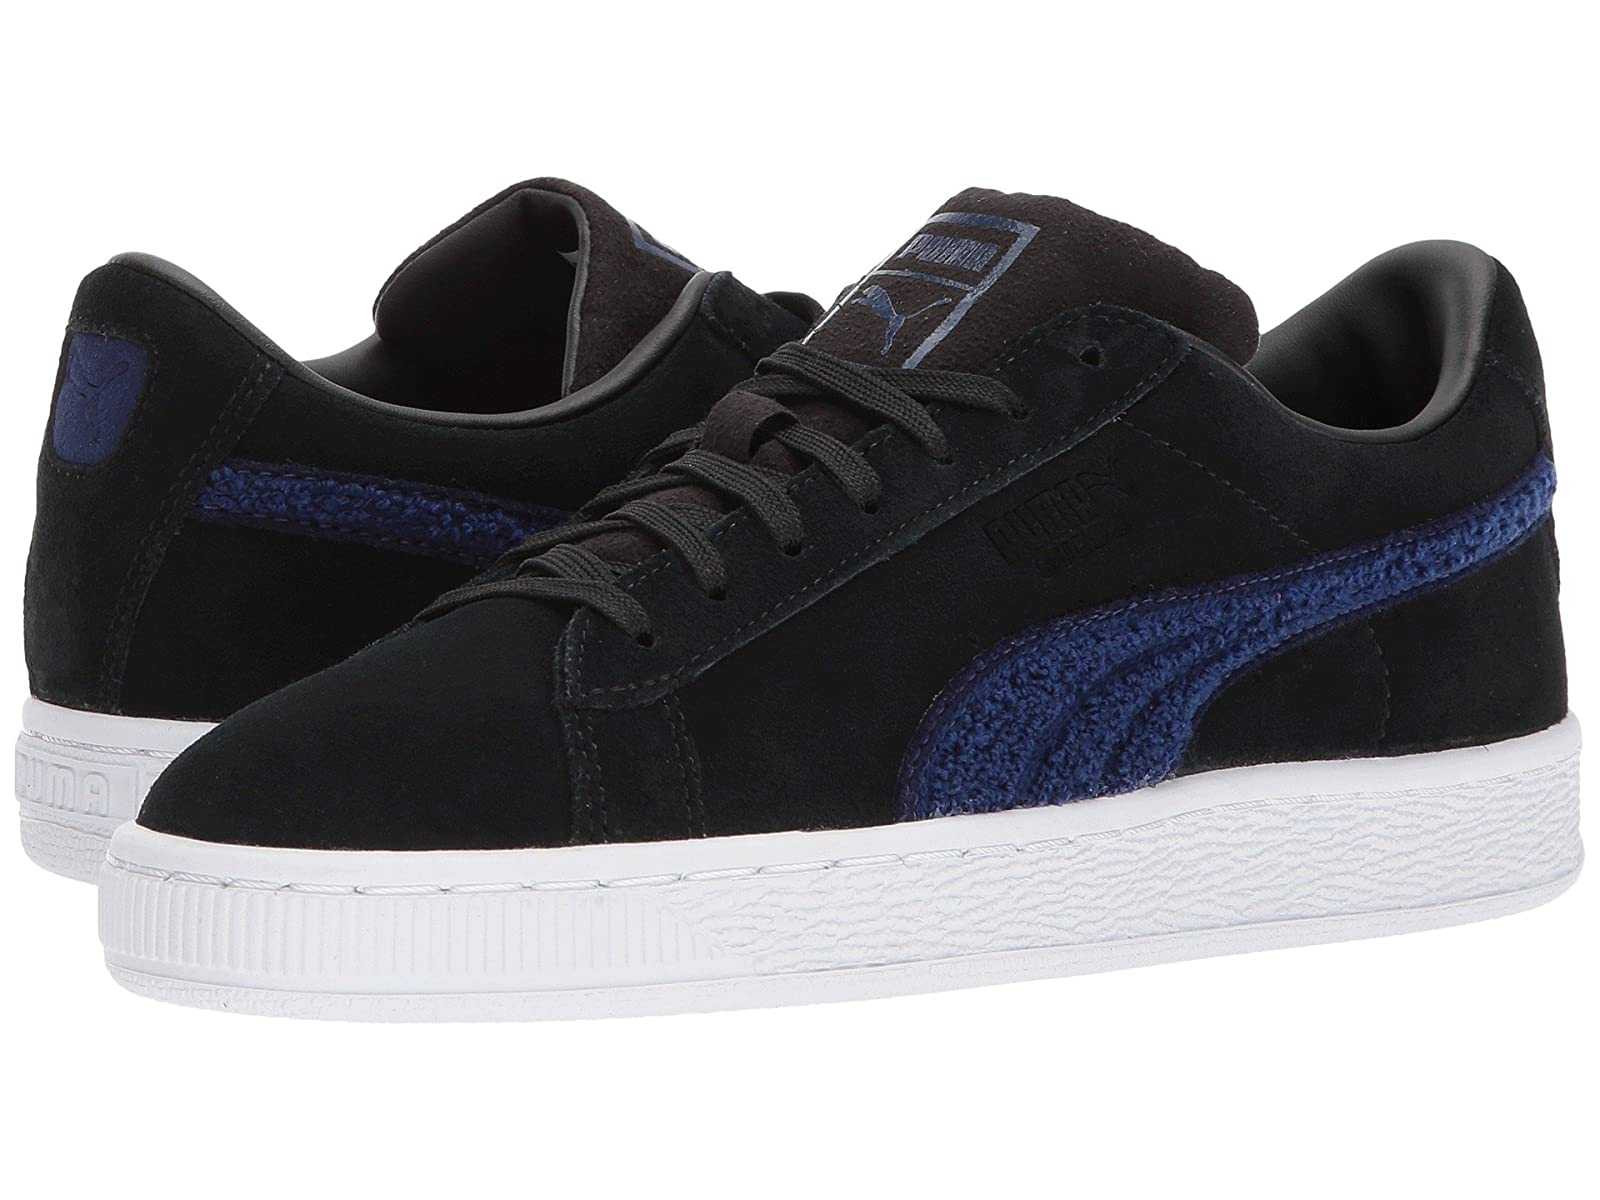 Puma Kids Suede Classic Terry (Big Kid)Cheap and distinctive eye-catching shoes